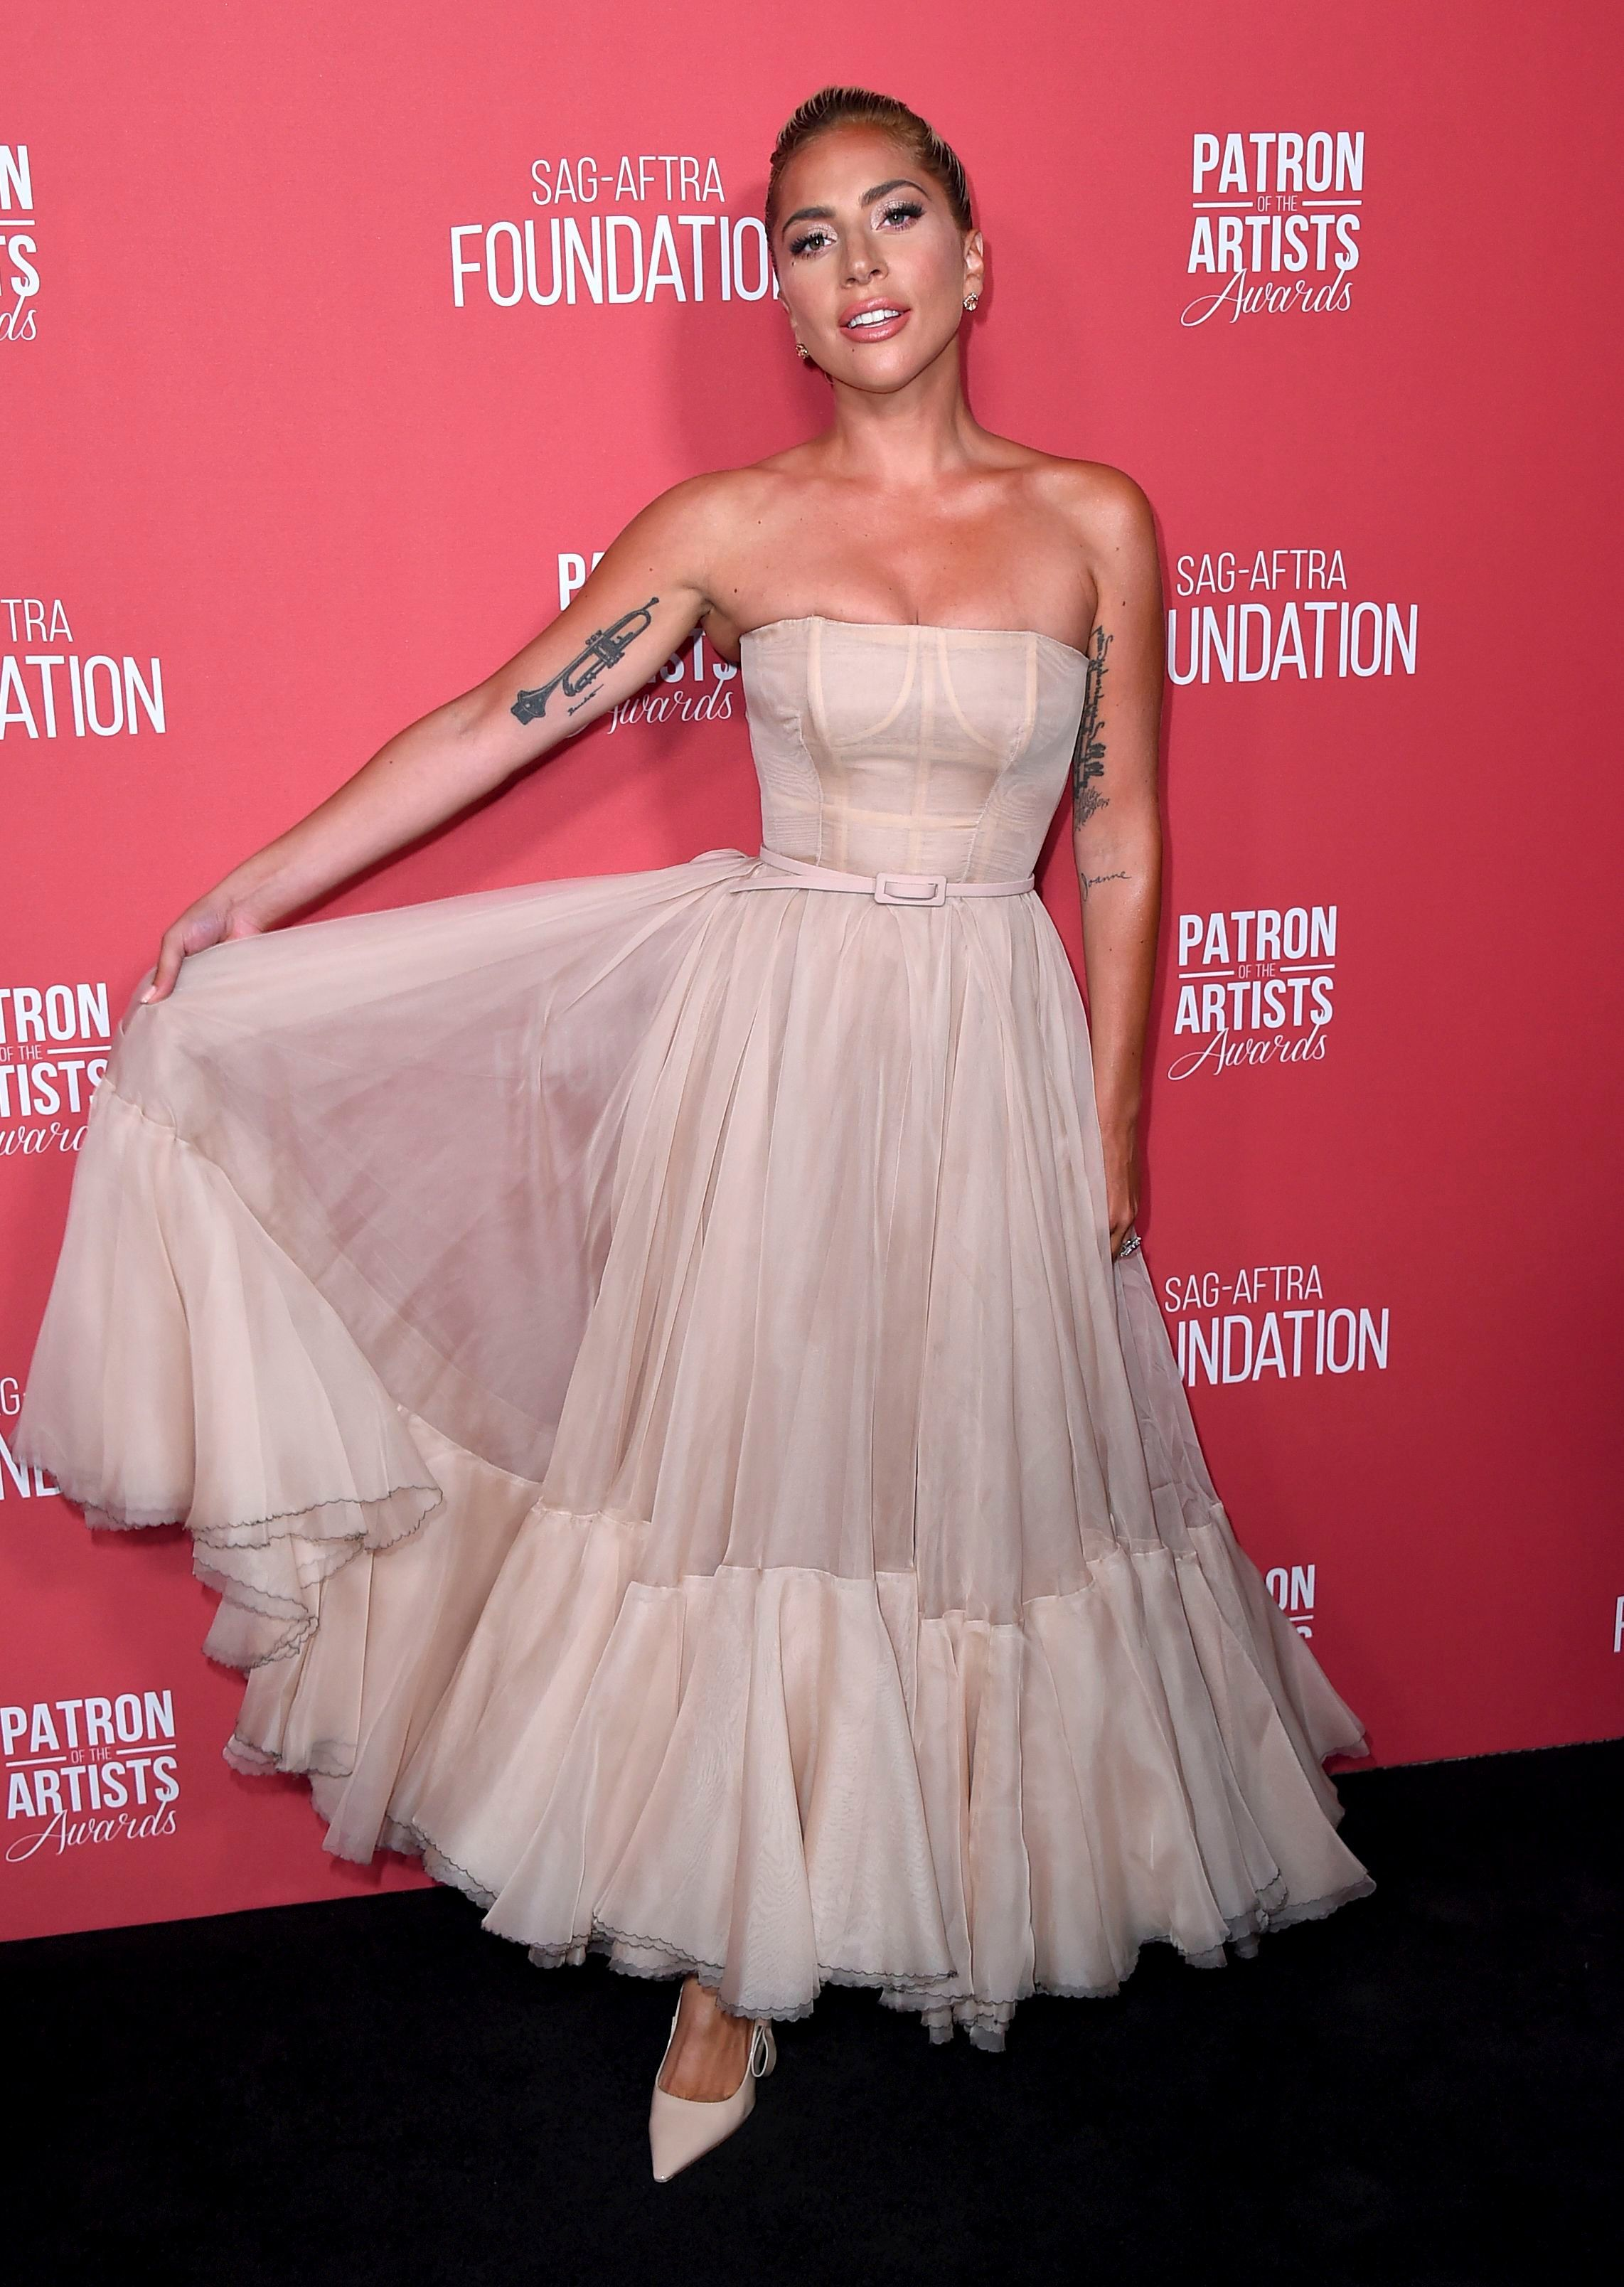 Lady Gaga arrives at the Patron of the Artists Awards, at the Wallis Annenberg Center for the Performing Arts in Beverly Hills, California, on Nov. 8, 2018.